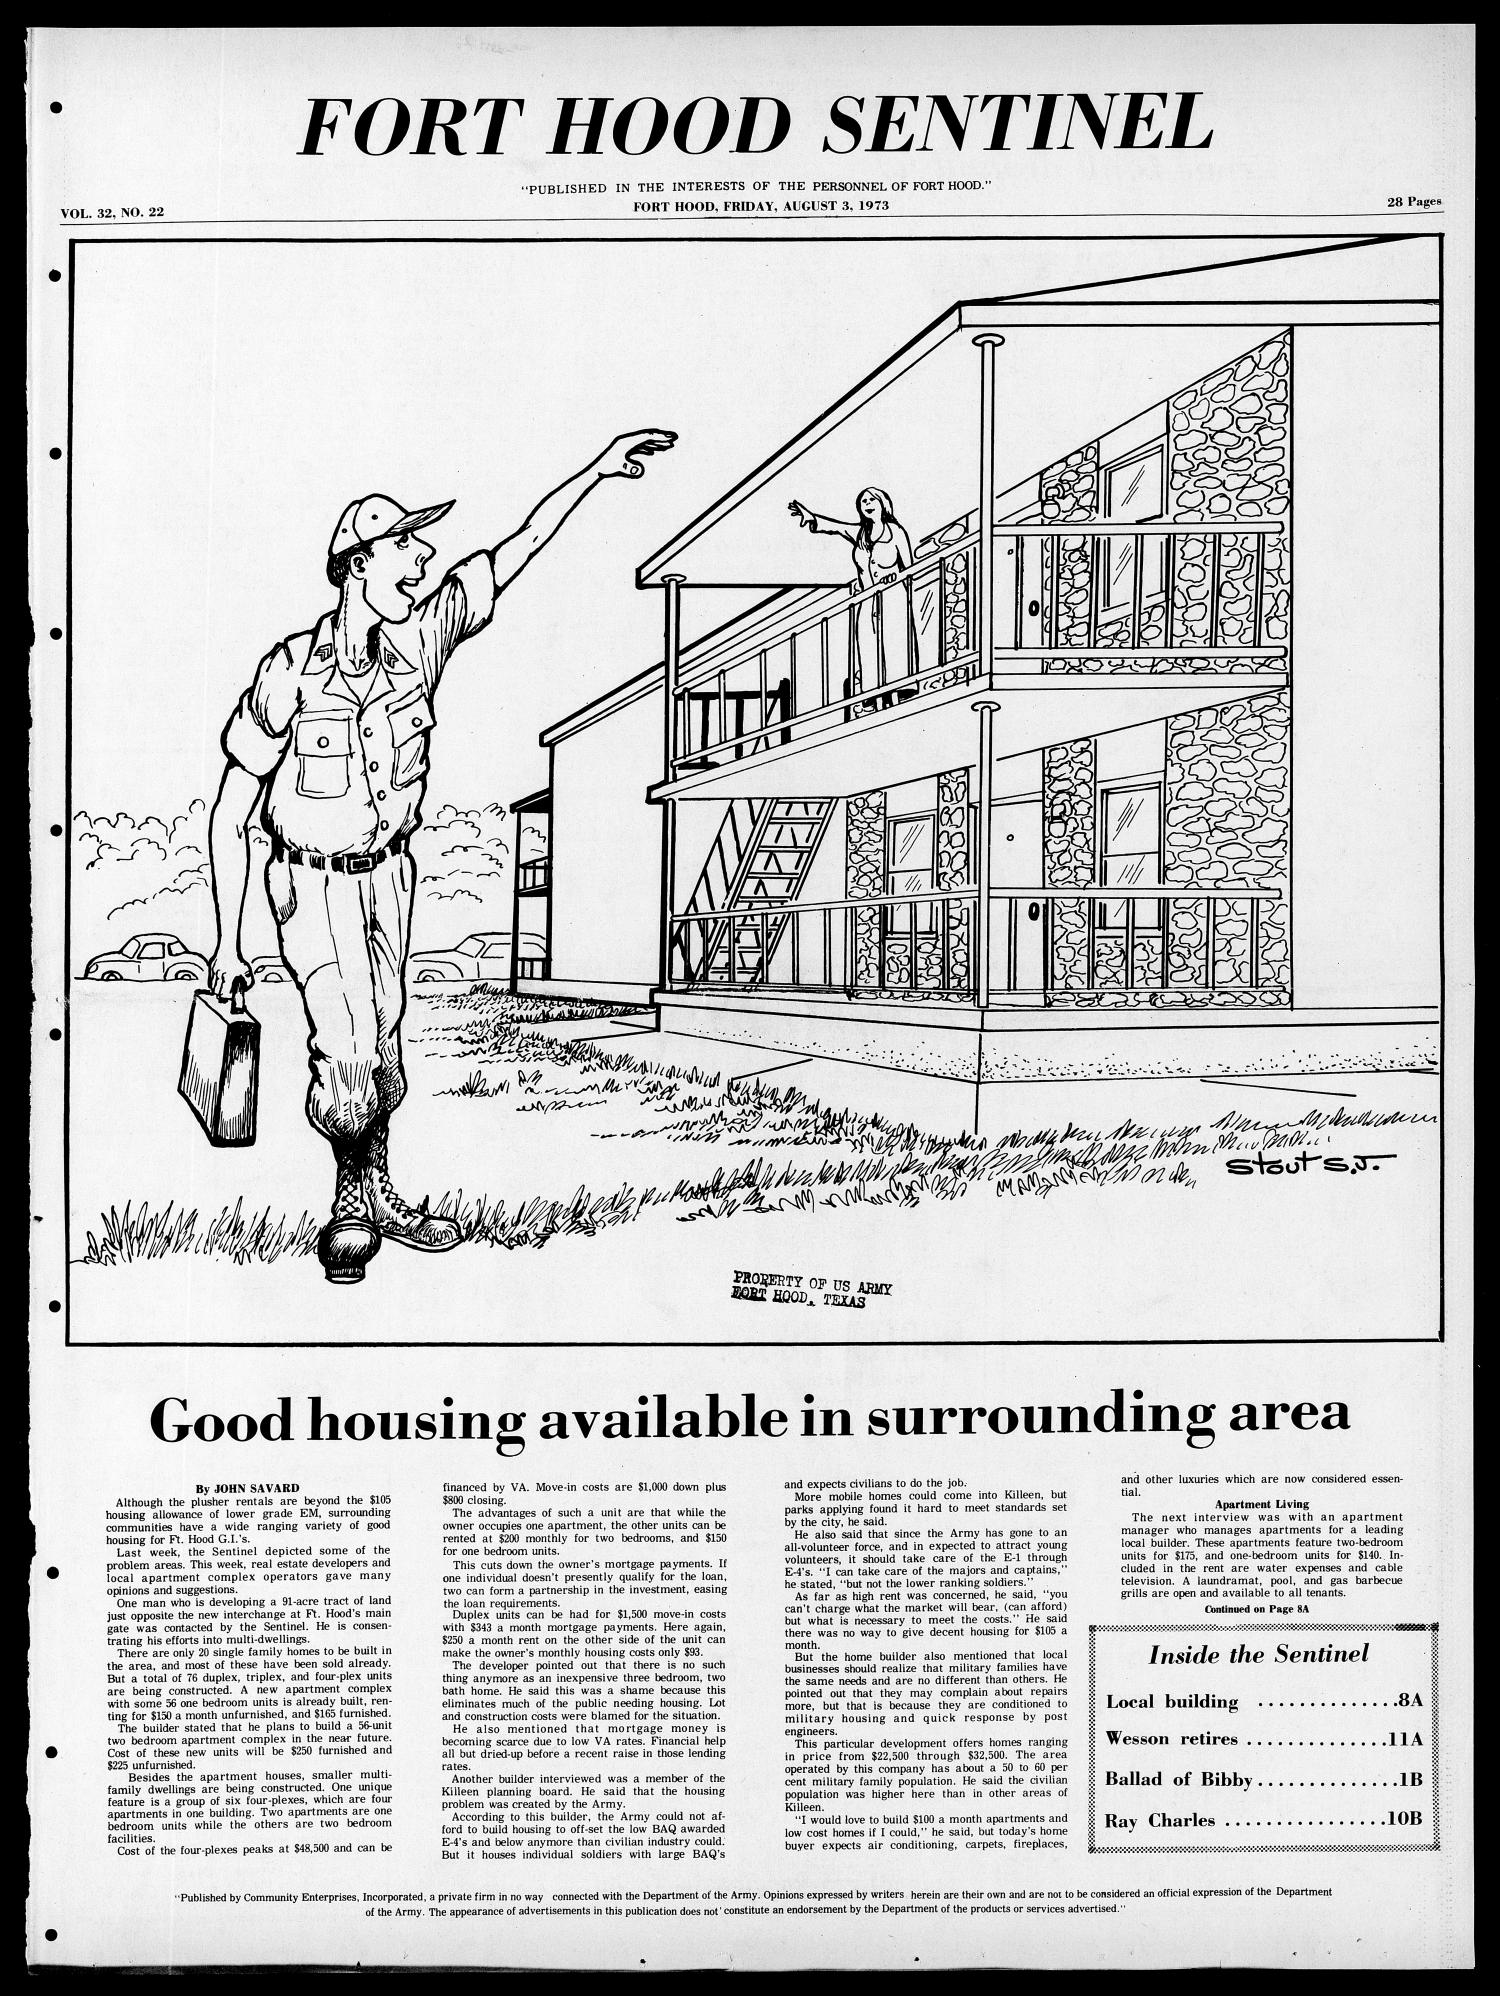 Fort Hood Sentinel (Temple, Tex.), Vol. 32, No. 22, Ed. 1 Friday, August 3, 1973                                                                                                      [Sequence #]: 1 of 28